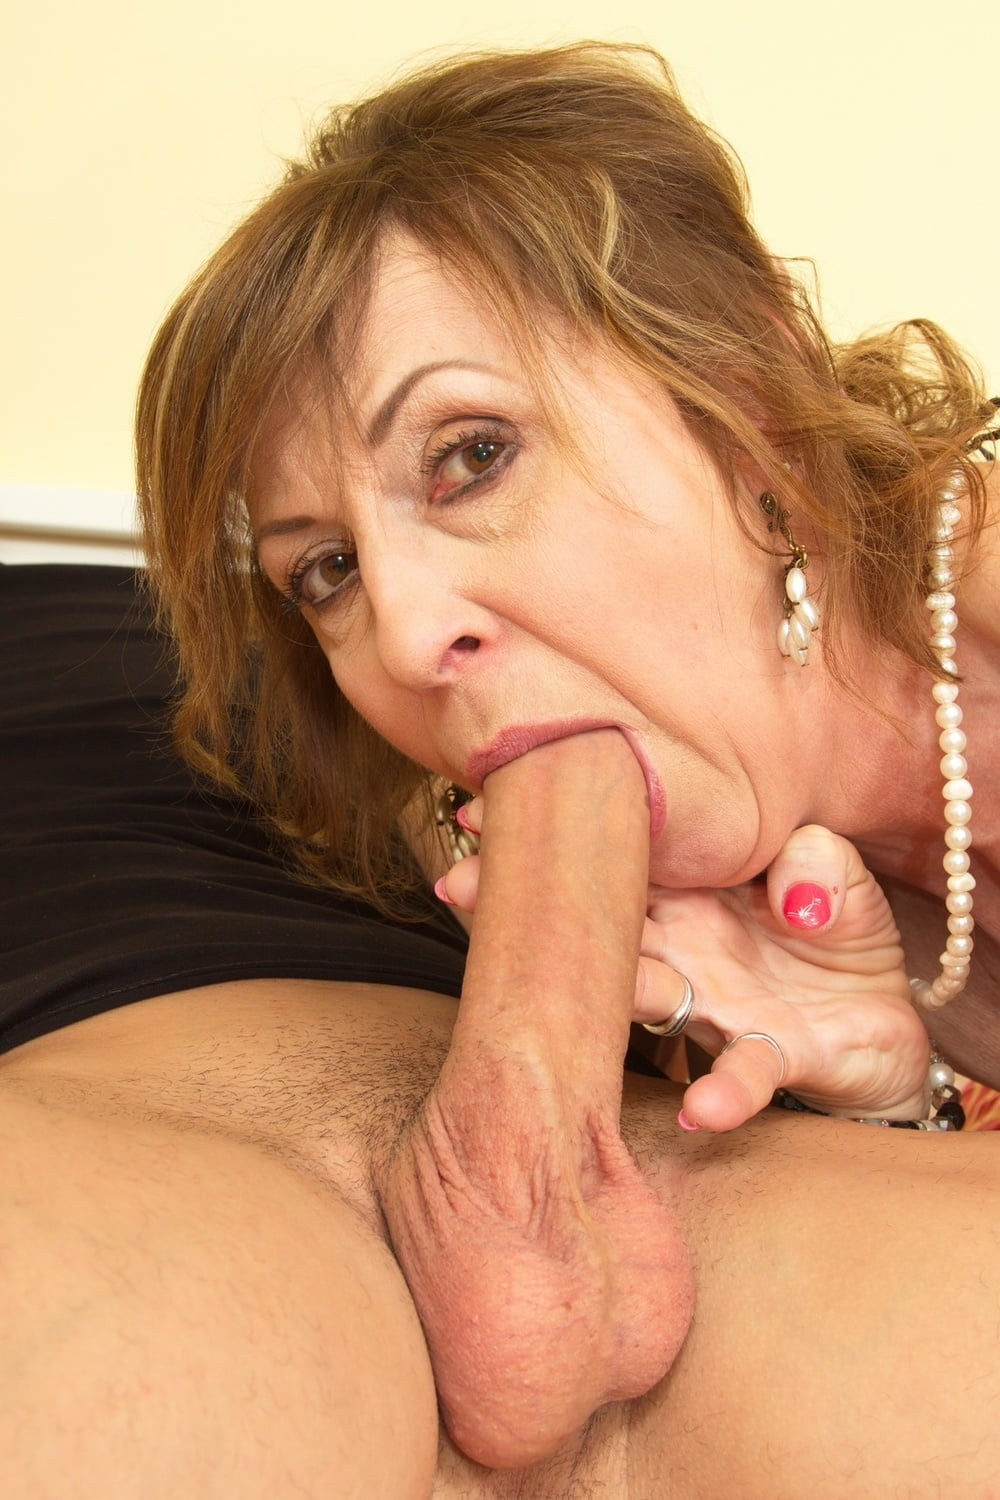 Mostly Mature Women, Cock In Hand